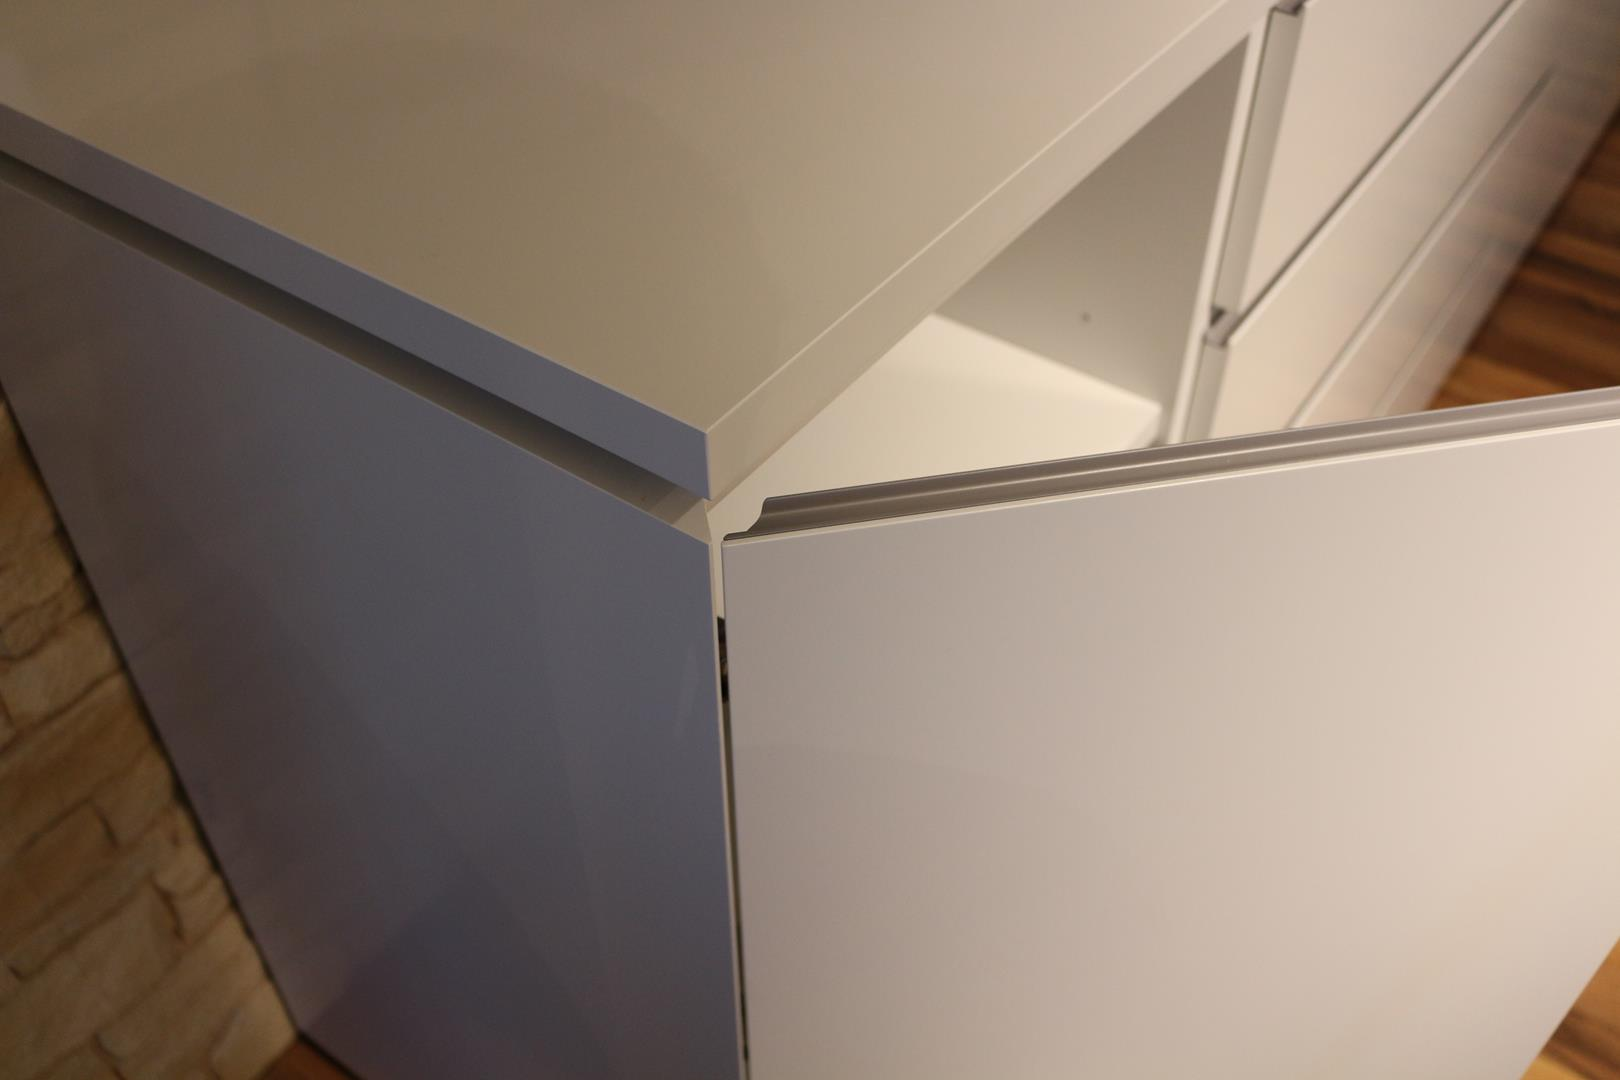 Sideboard Interlübke cube gab